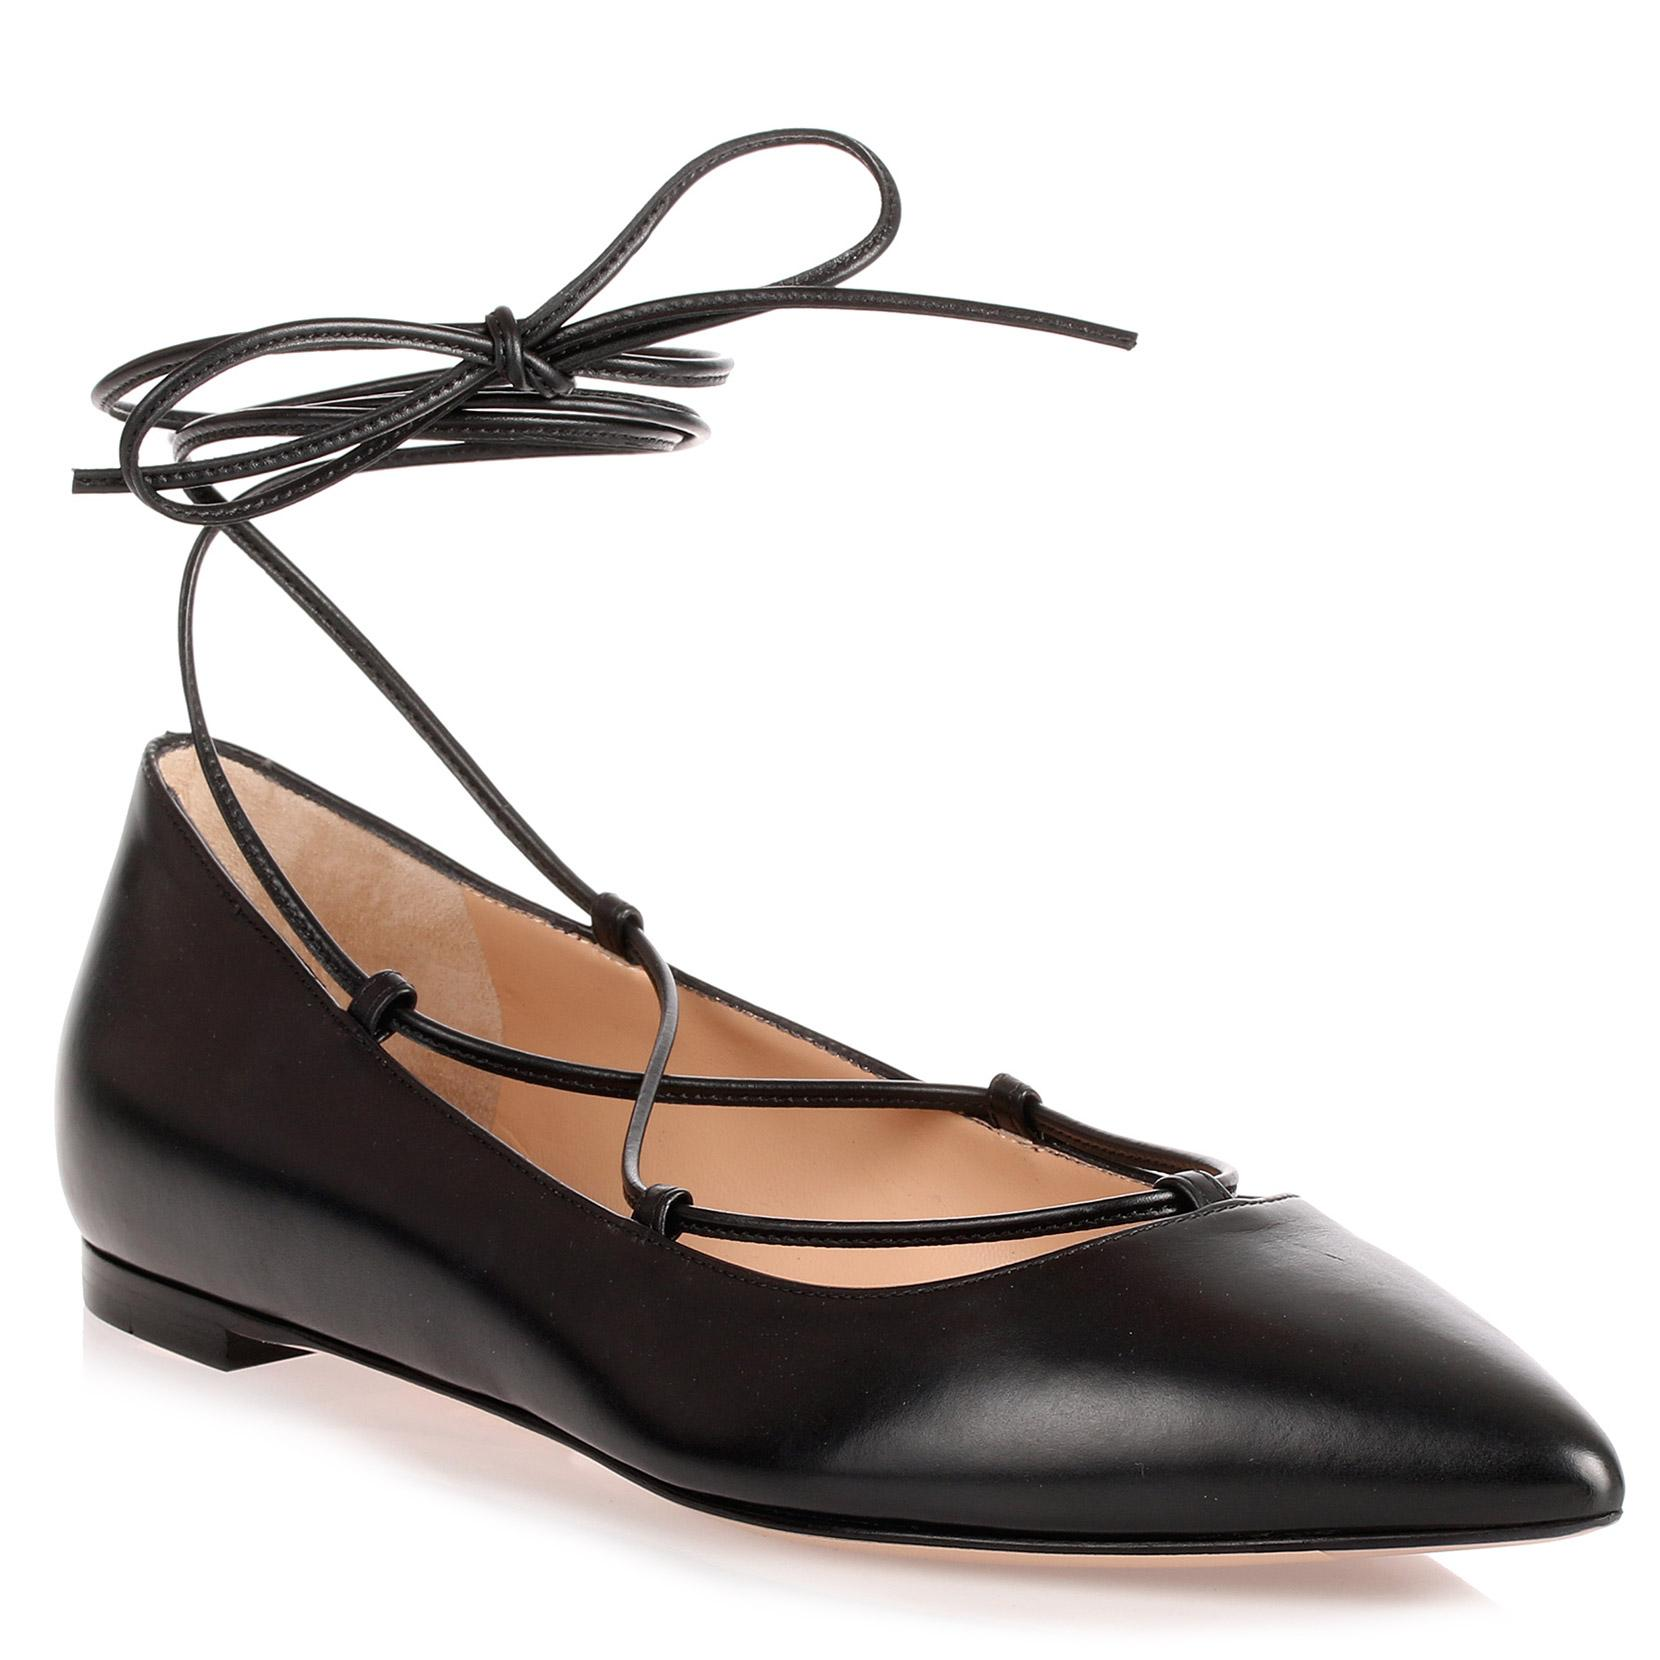 Gianvito Rossi Black Leather Lace Up Femi' Flat